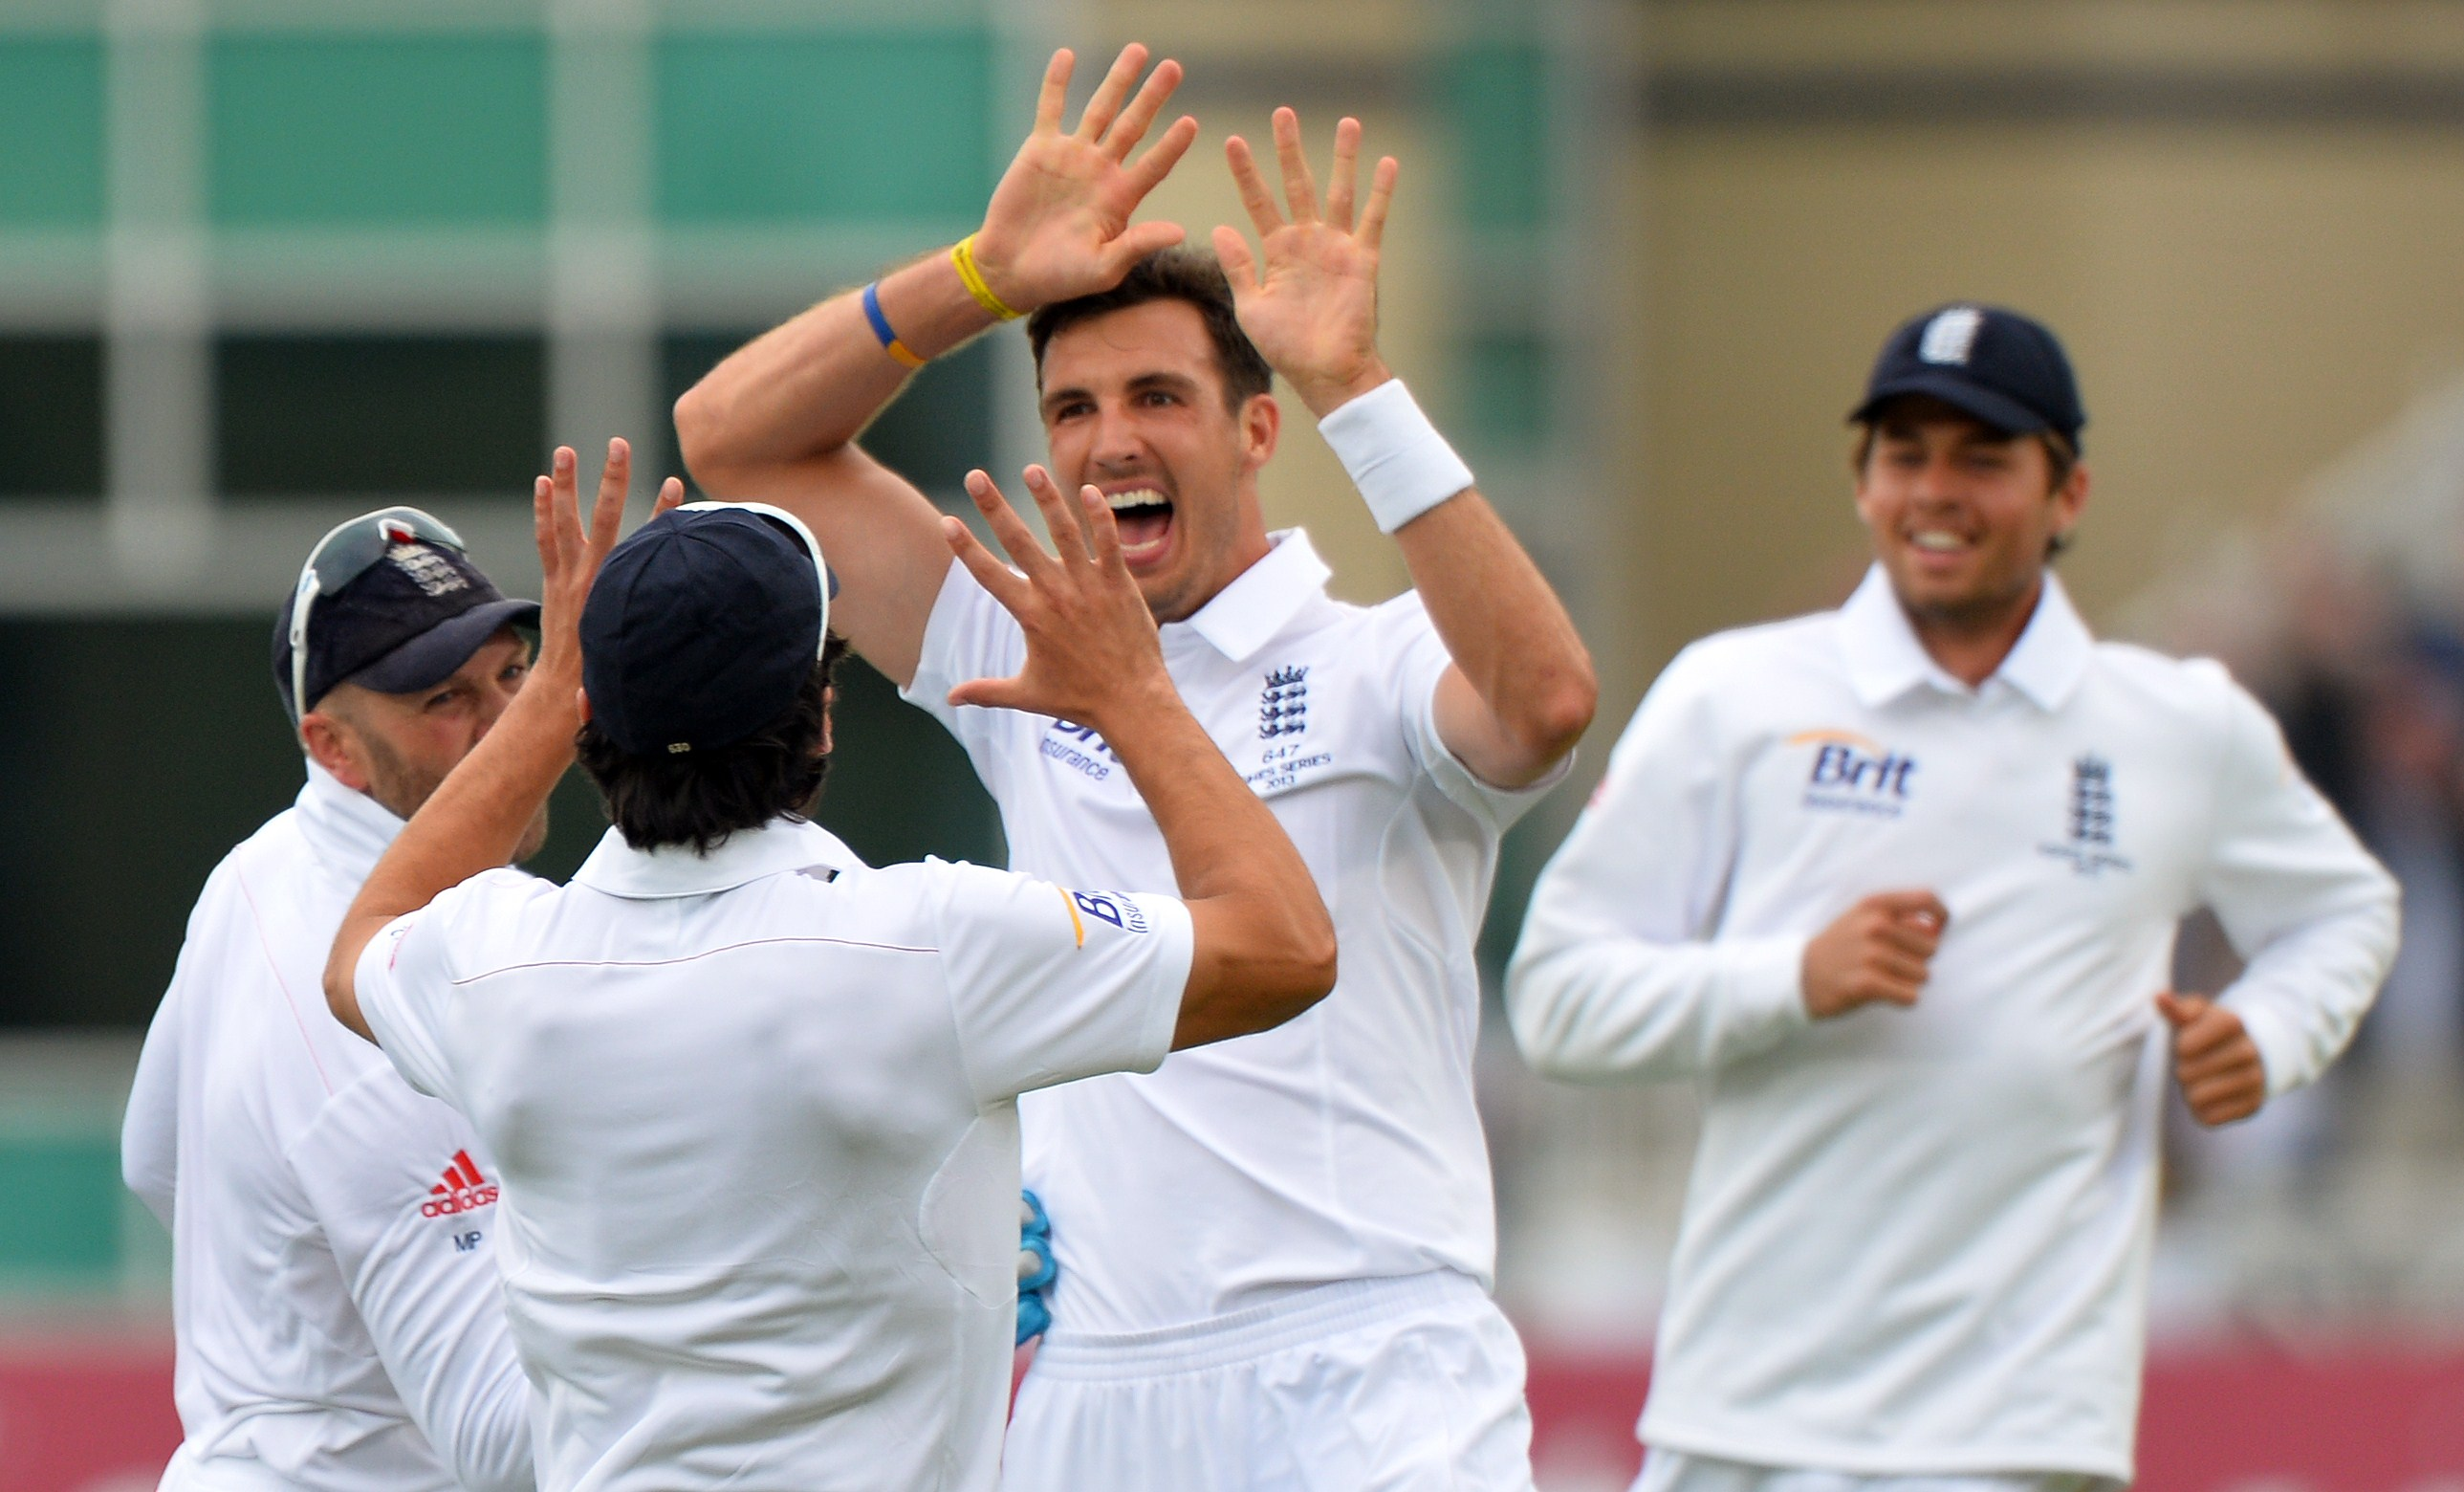 The Ashes: First Test is so tight it can go either way, warns Steven Finn